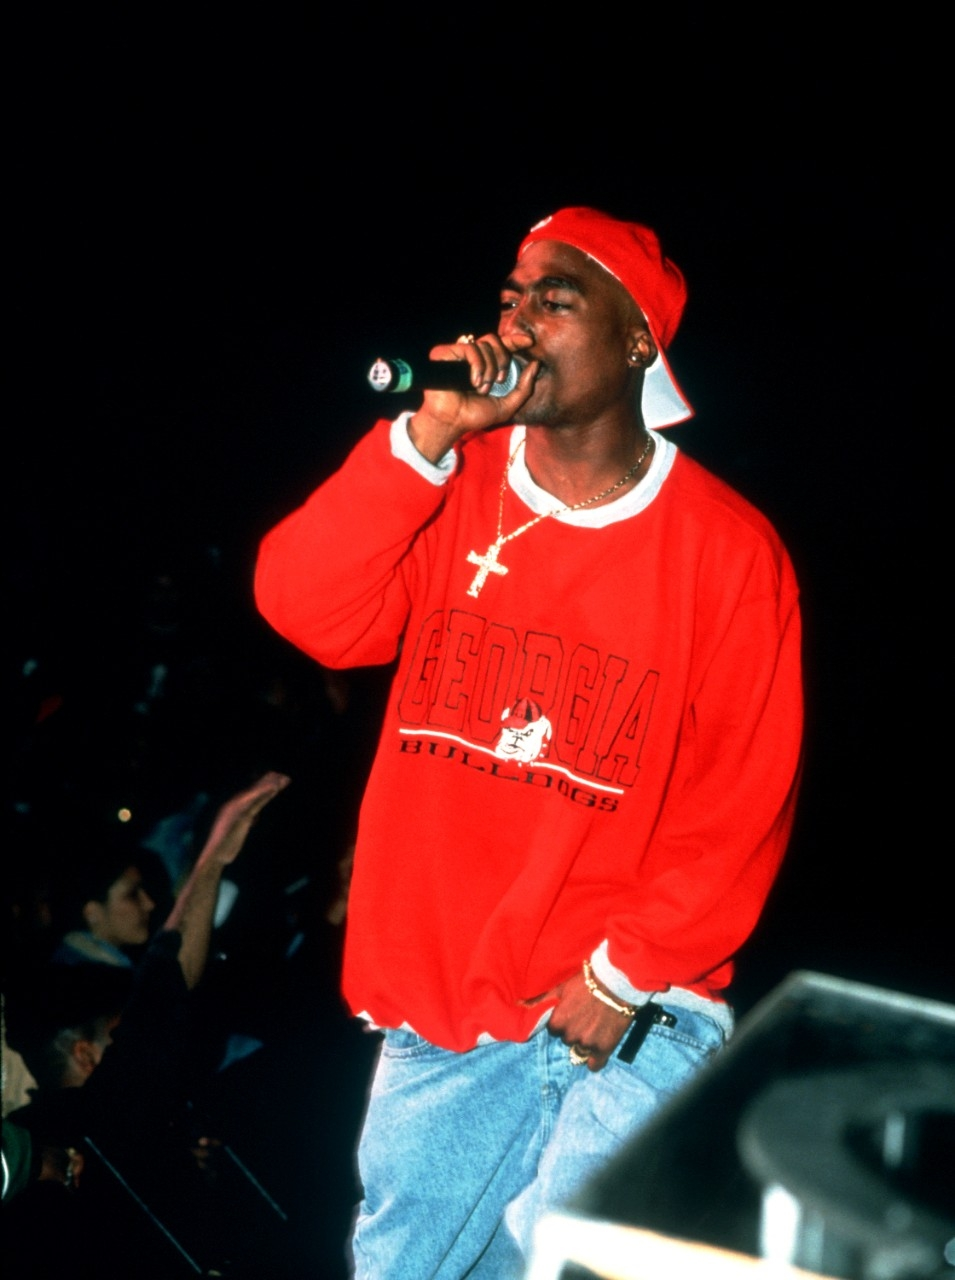 061716-Music-Tupac-Greatest-Moments-Performance.jpg